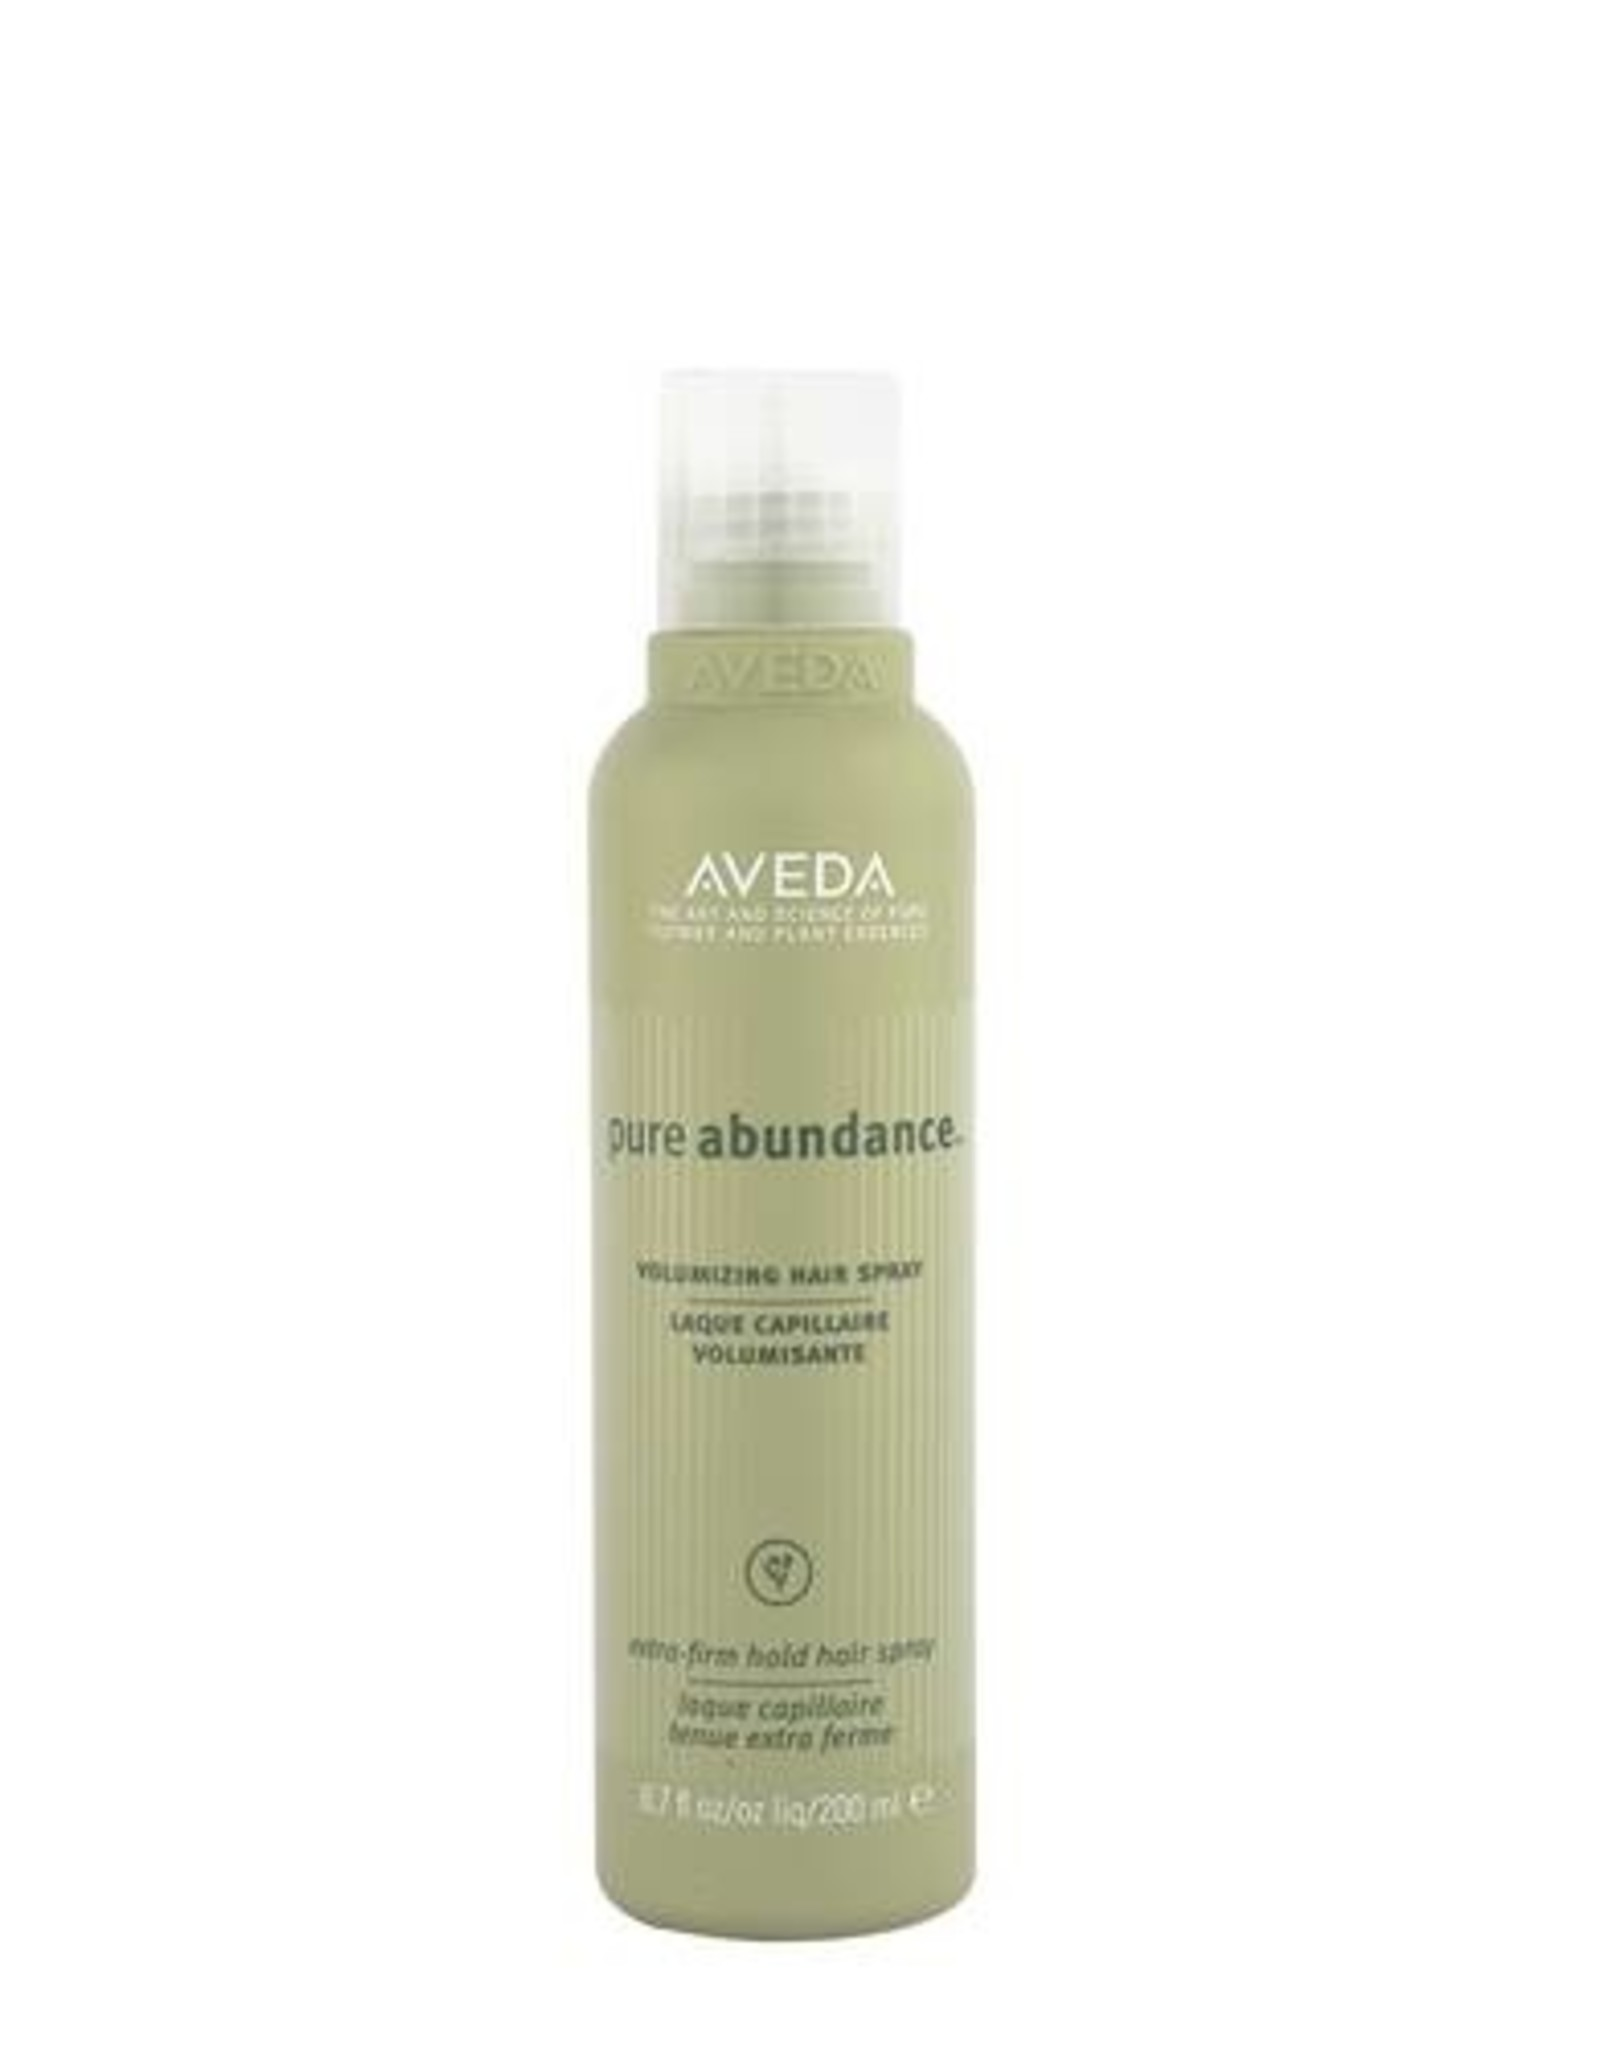 AVEDA Pure Abundance™ Volumizing Hair Spray